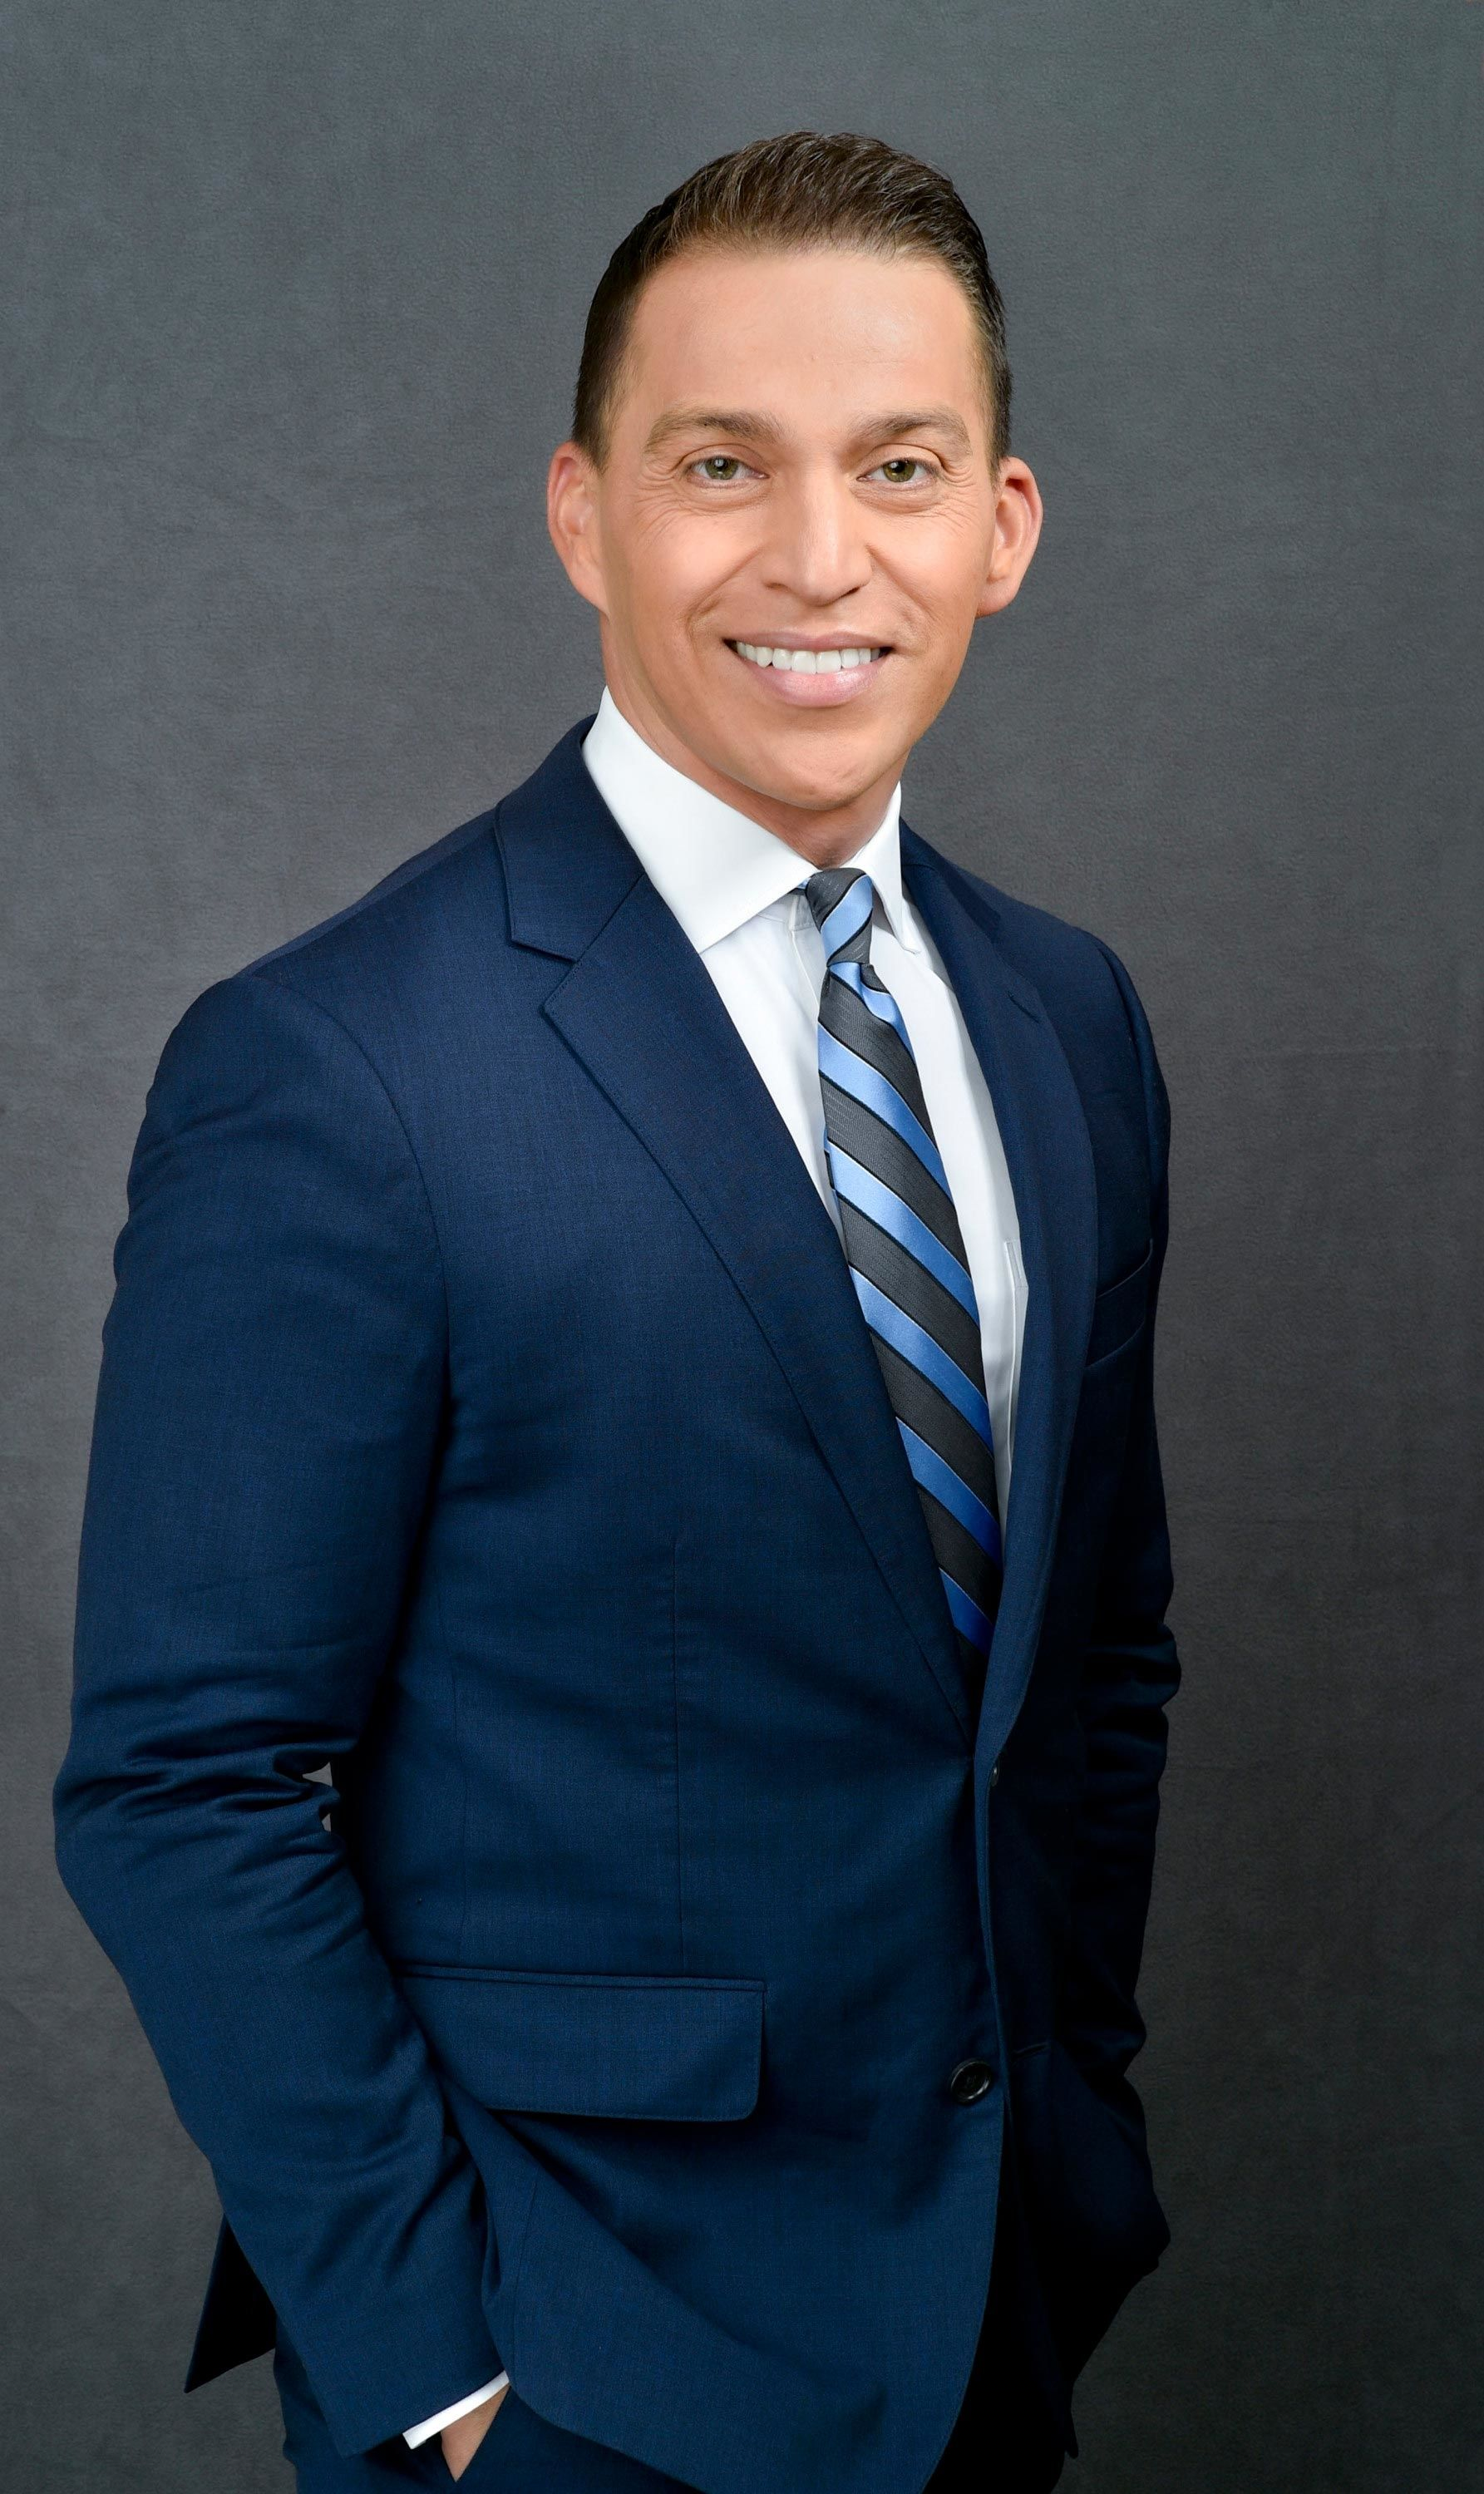 Manuel Bojorquez of CBS News.